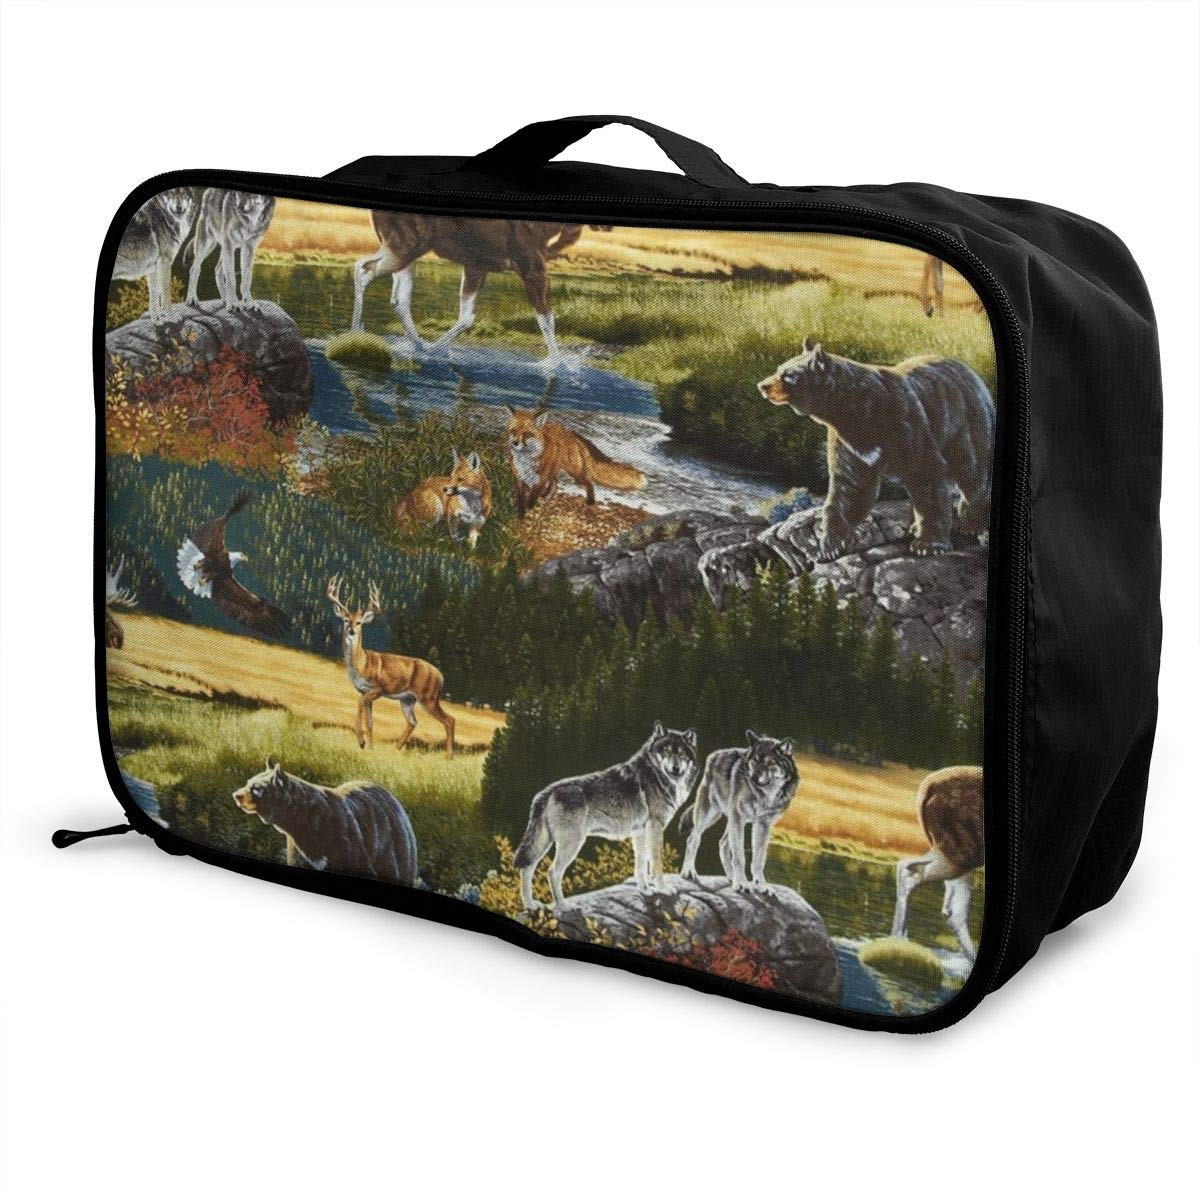 Mountain Wildlife Nature Bear Moose Travel Lightweight Waterproof Foldable Storage Carry Luggage Duffle Tote Bag Large Capacity In Trolley Handle Bags 6x11x15 Inch